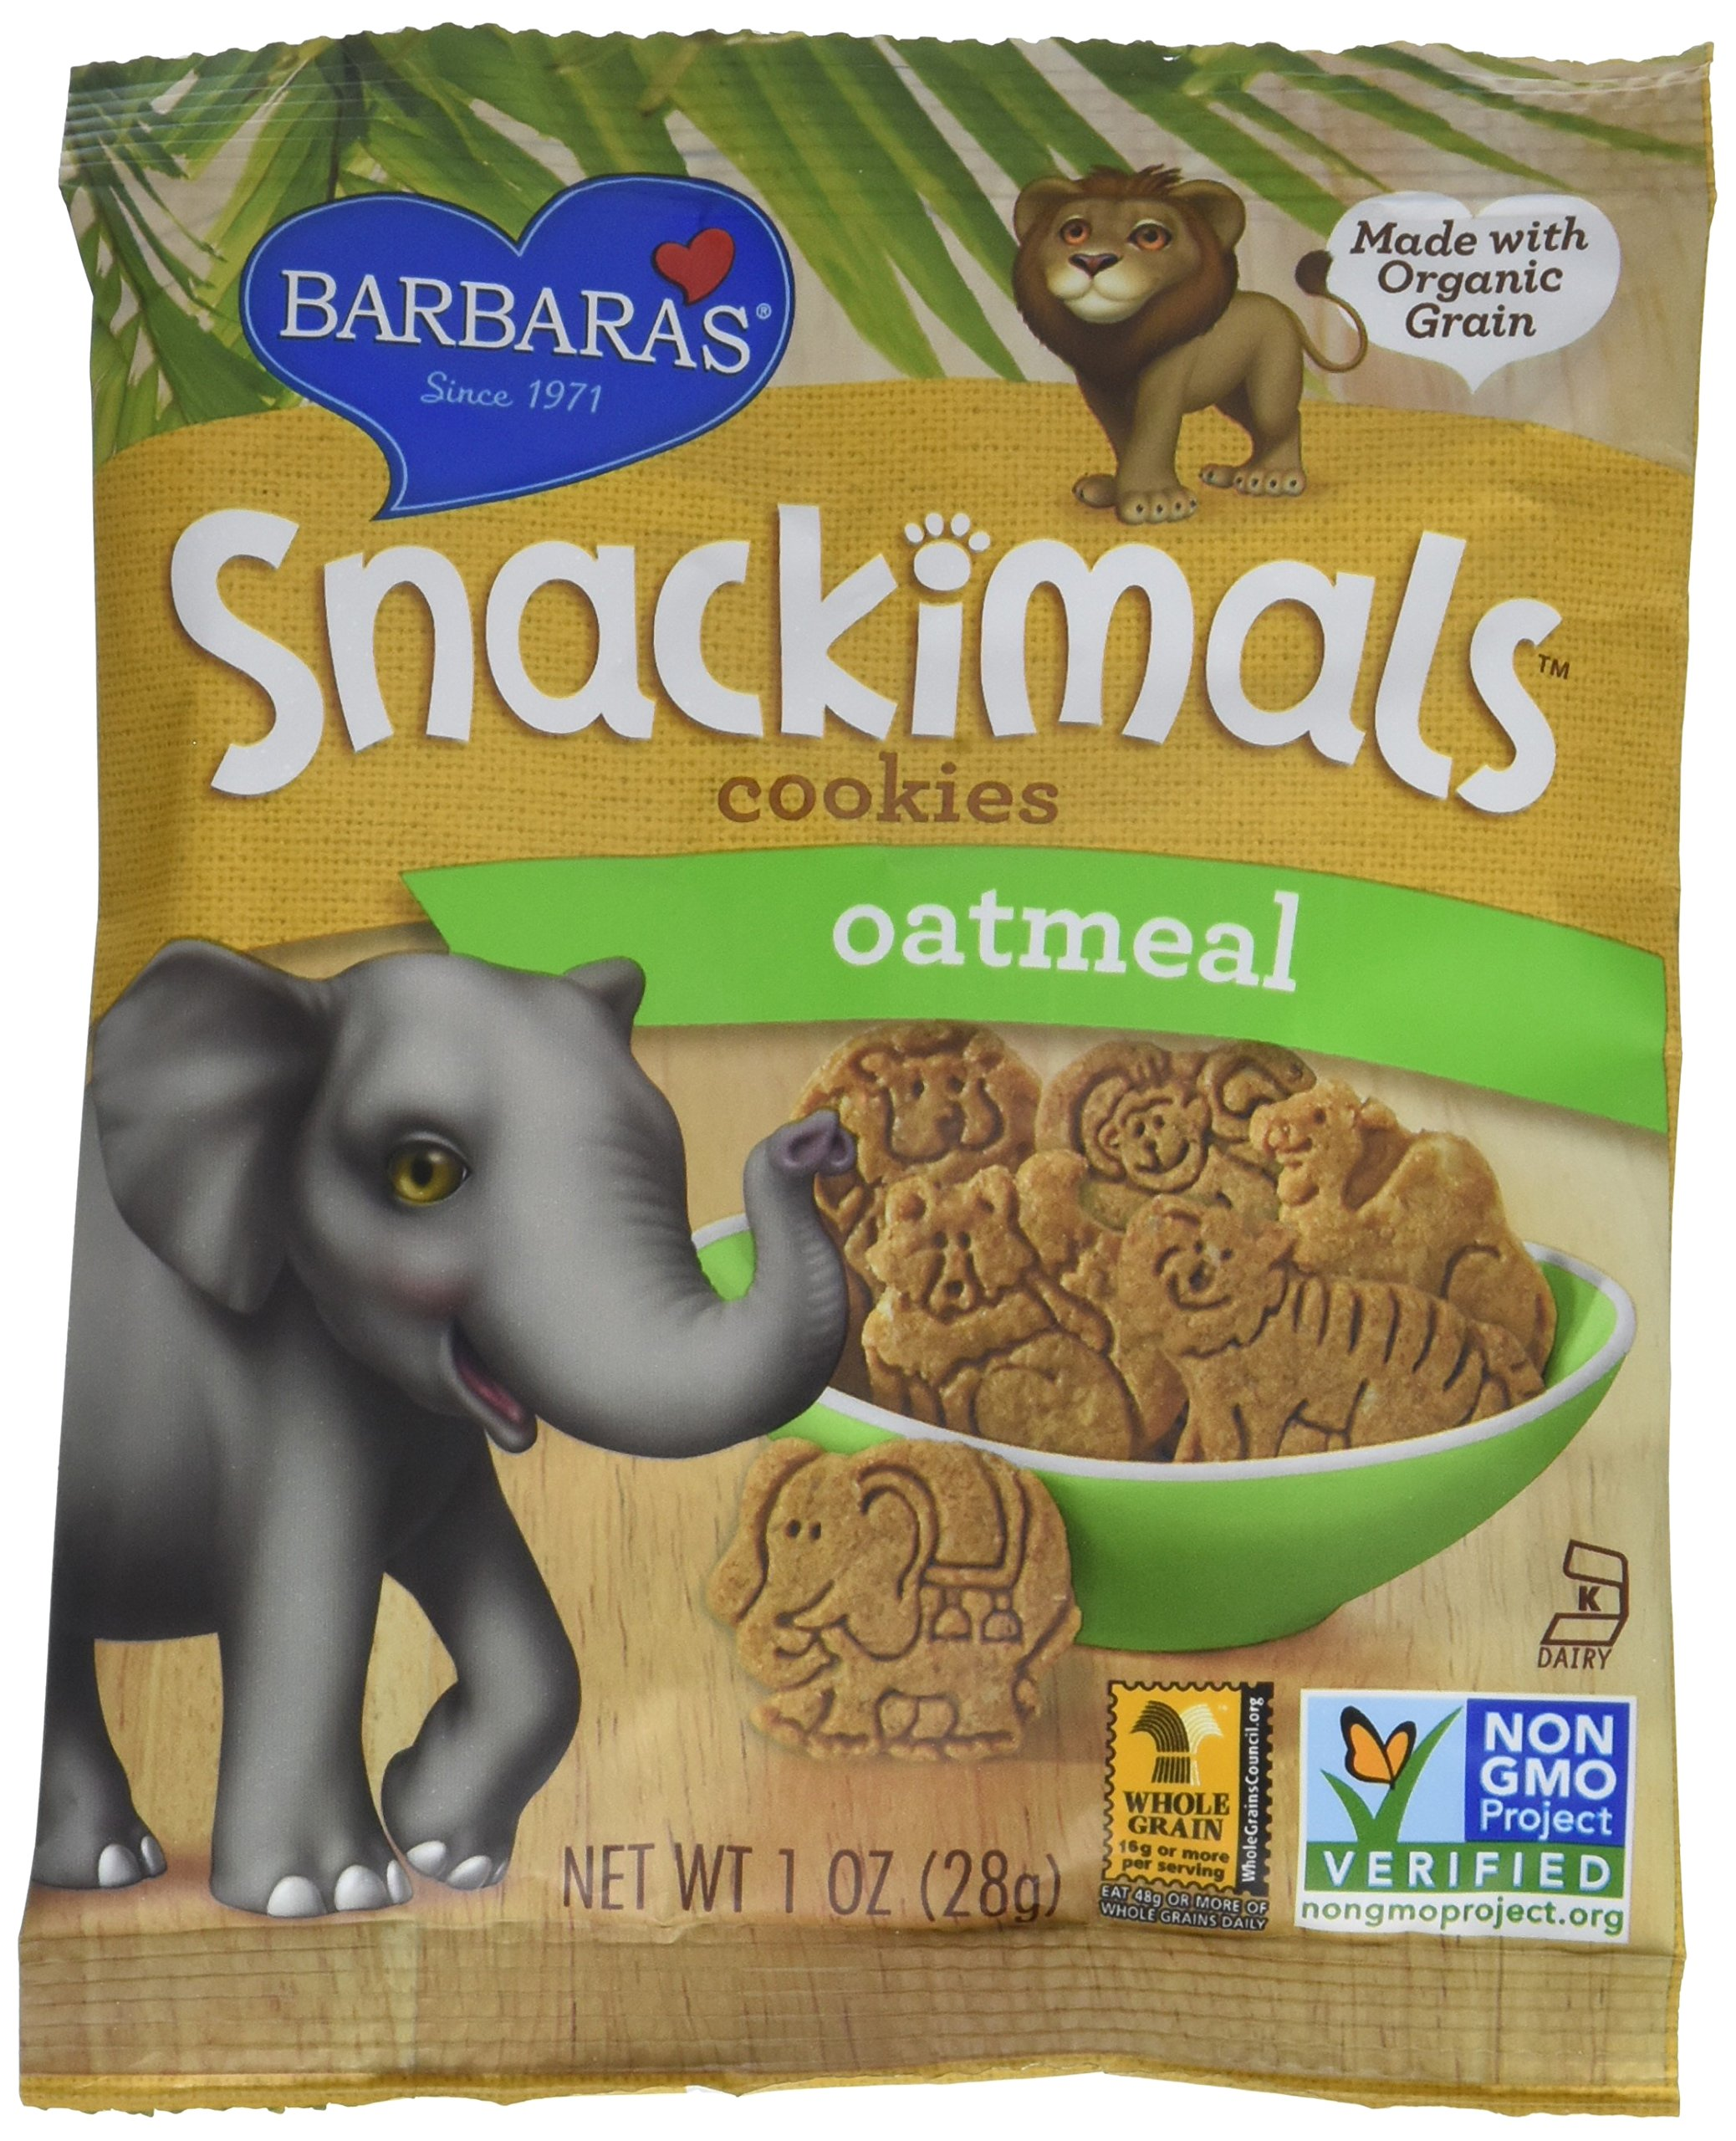 Barbara's Bakery Organic Oatmeal Snackimals - 1 oz - 6 pk